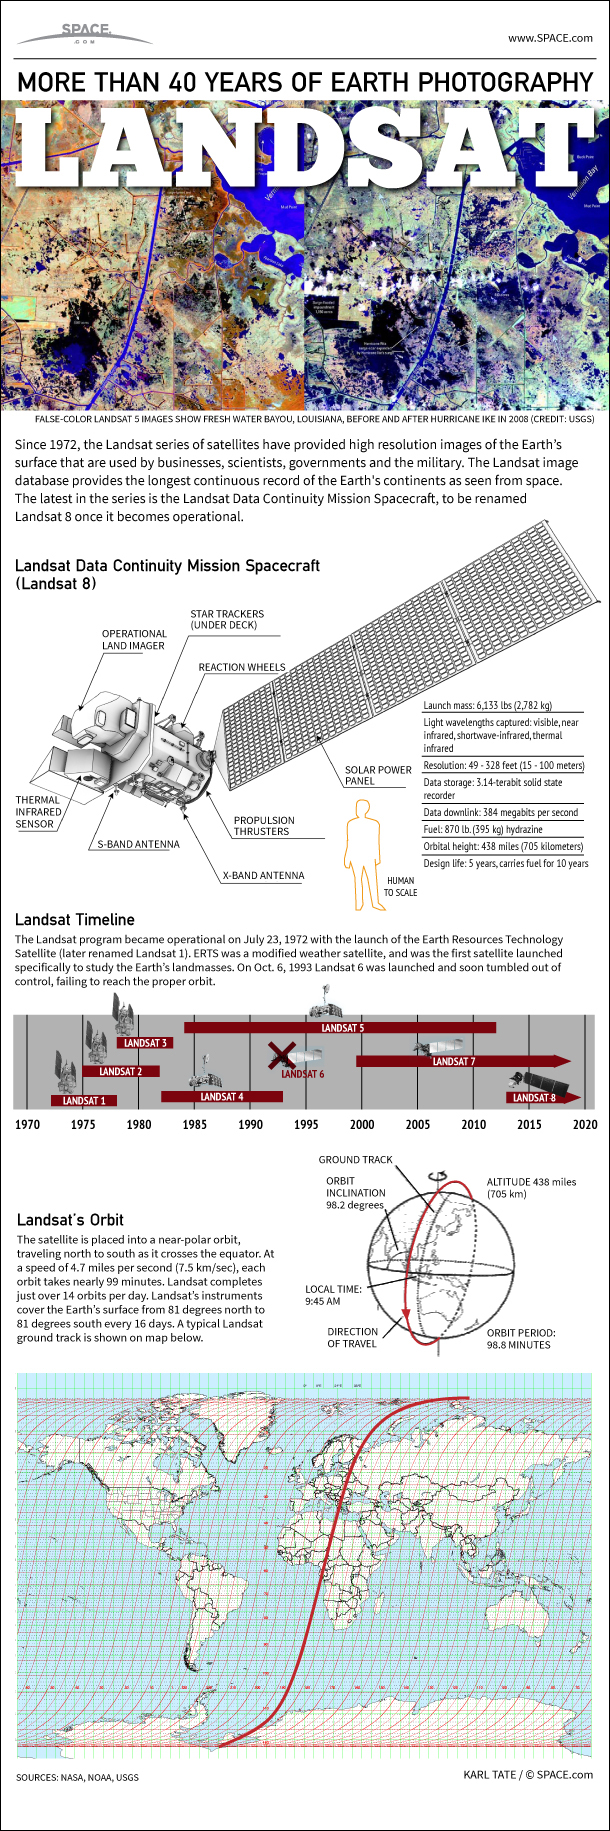 See how NASA's Landsat satellite constellation have kept watch on Earth for 40 years in this SPACE.com Infographic.